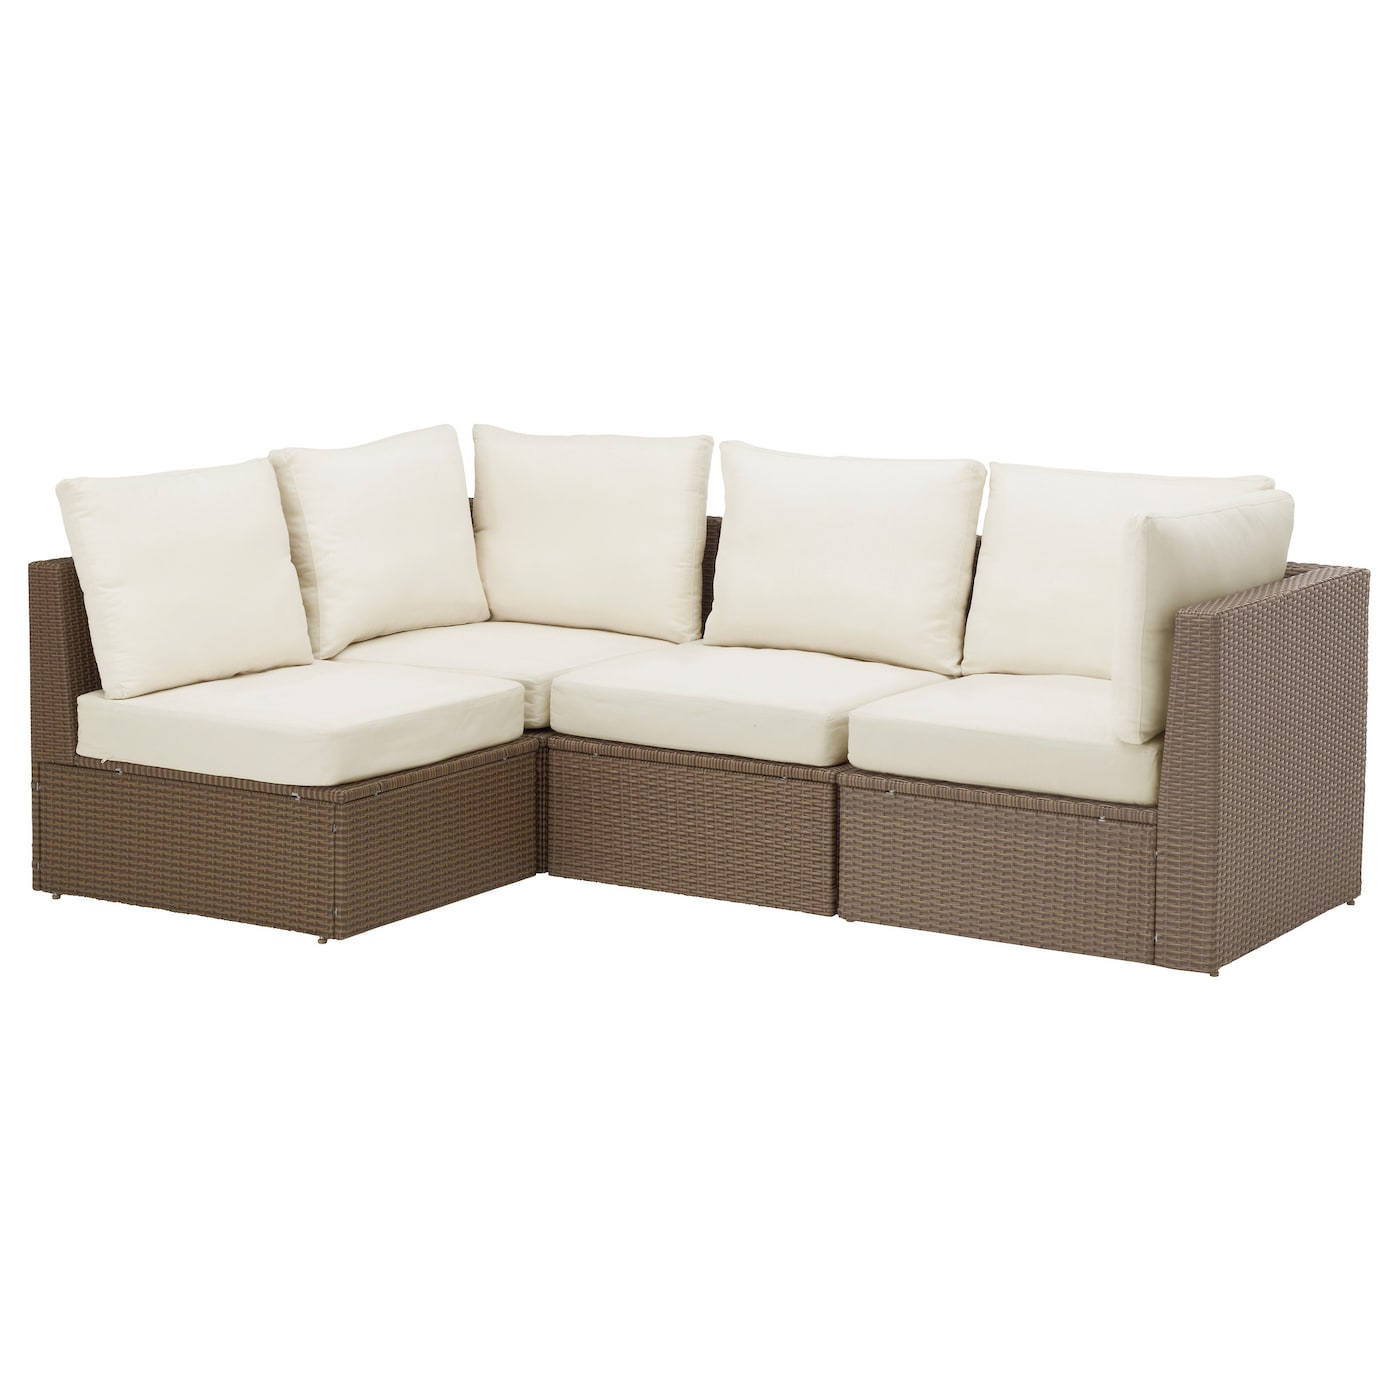 arholma corner sofa 3 1 outdoor brown beige 141 217x76x66. Black Bedroom Furniture Sets. Home Design Ideas